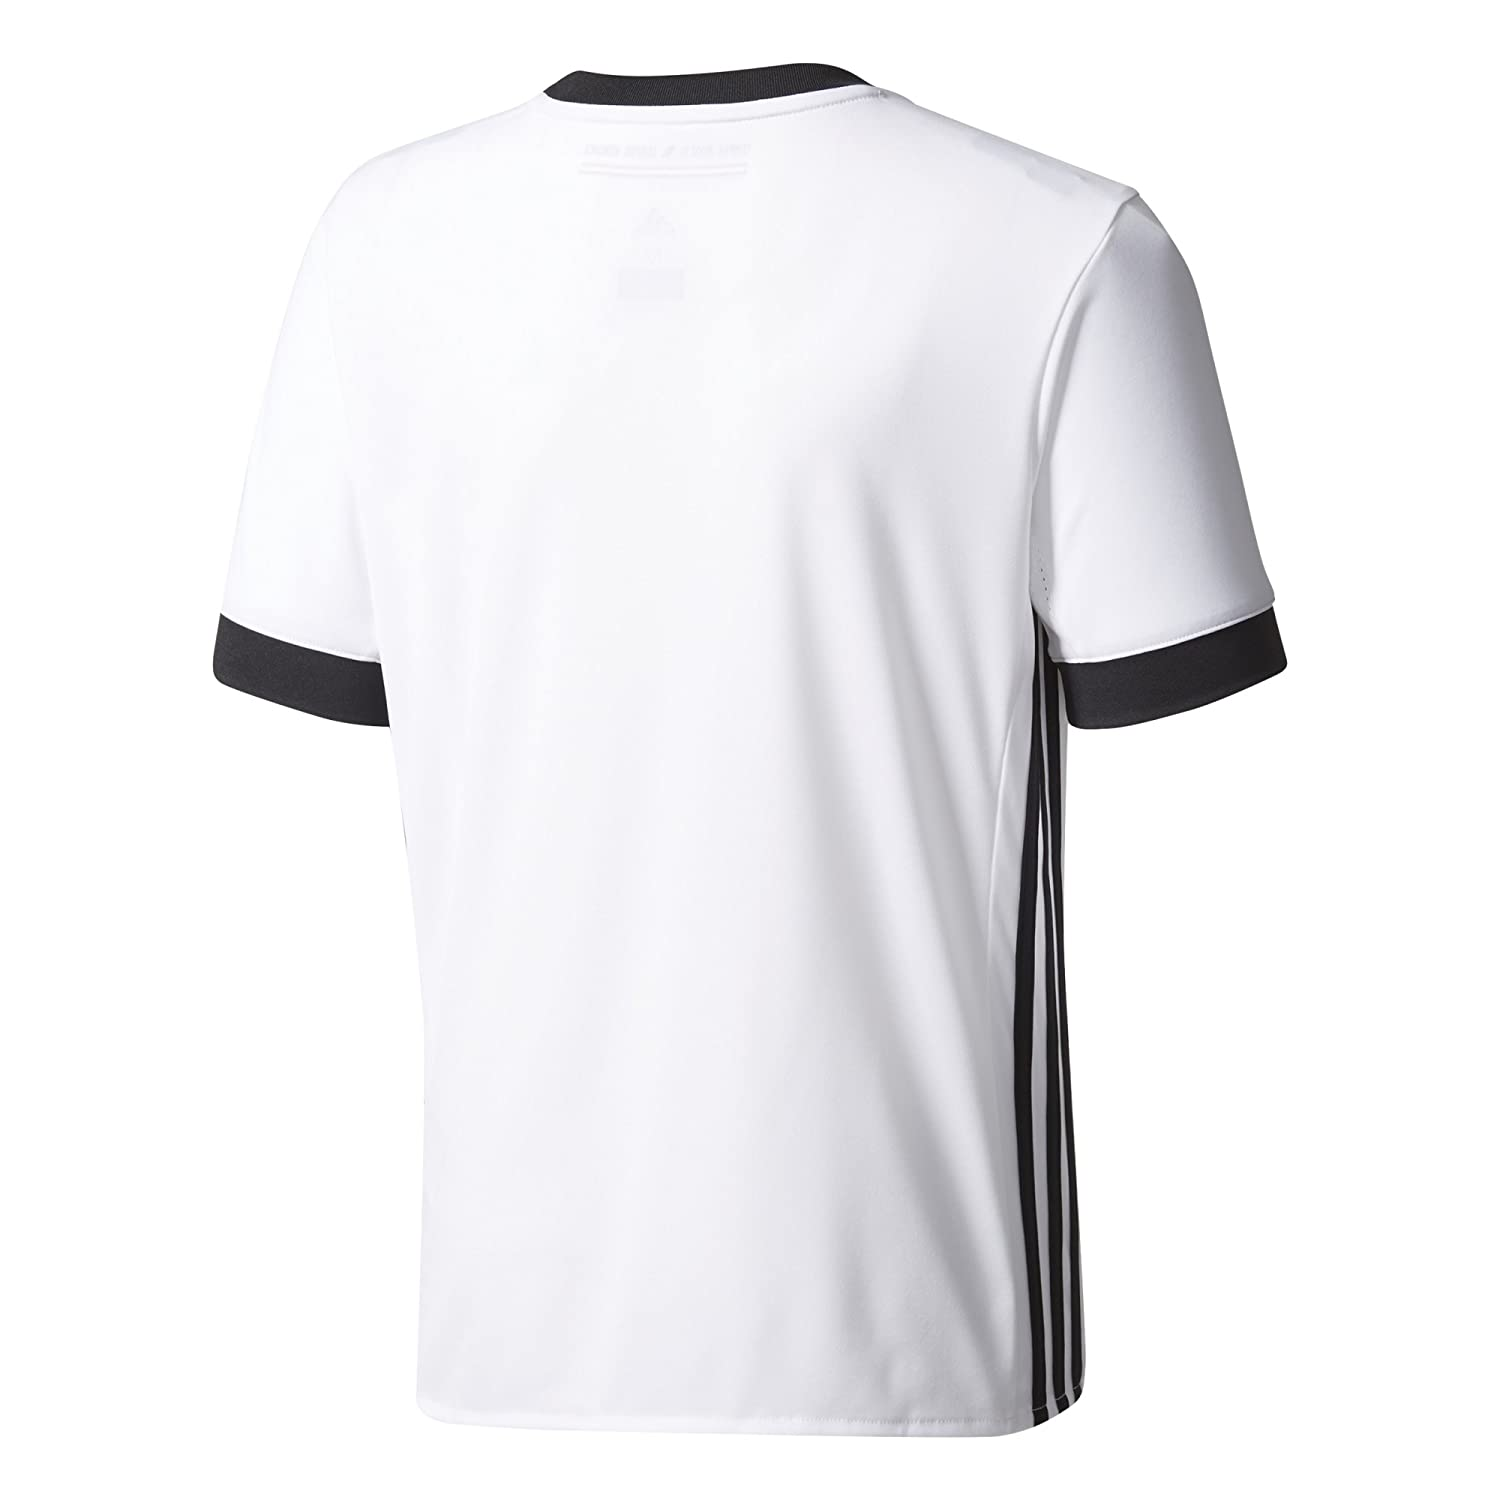 1b3d83c2aa2 Amazon.com : adidas 2017-2018 Legia Warsaw Home Football Soccer T-Shirt  Jersey (Kids) : Sports & Outdoors